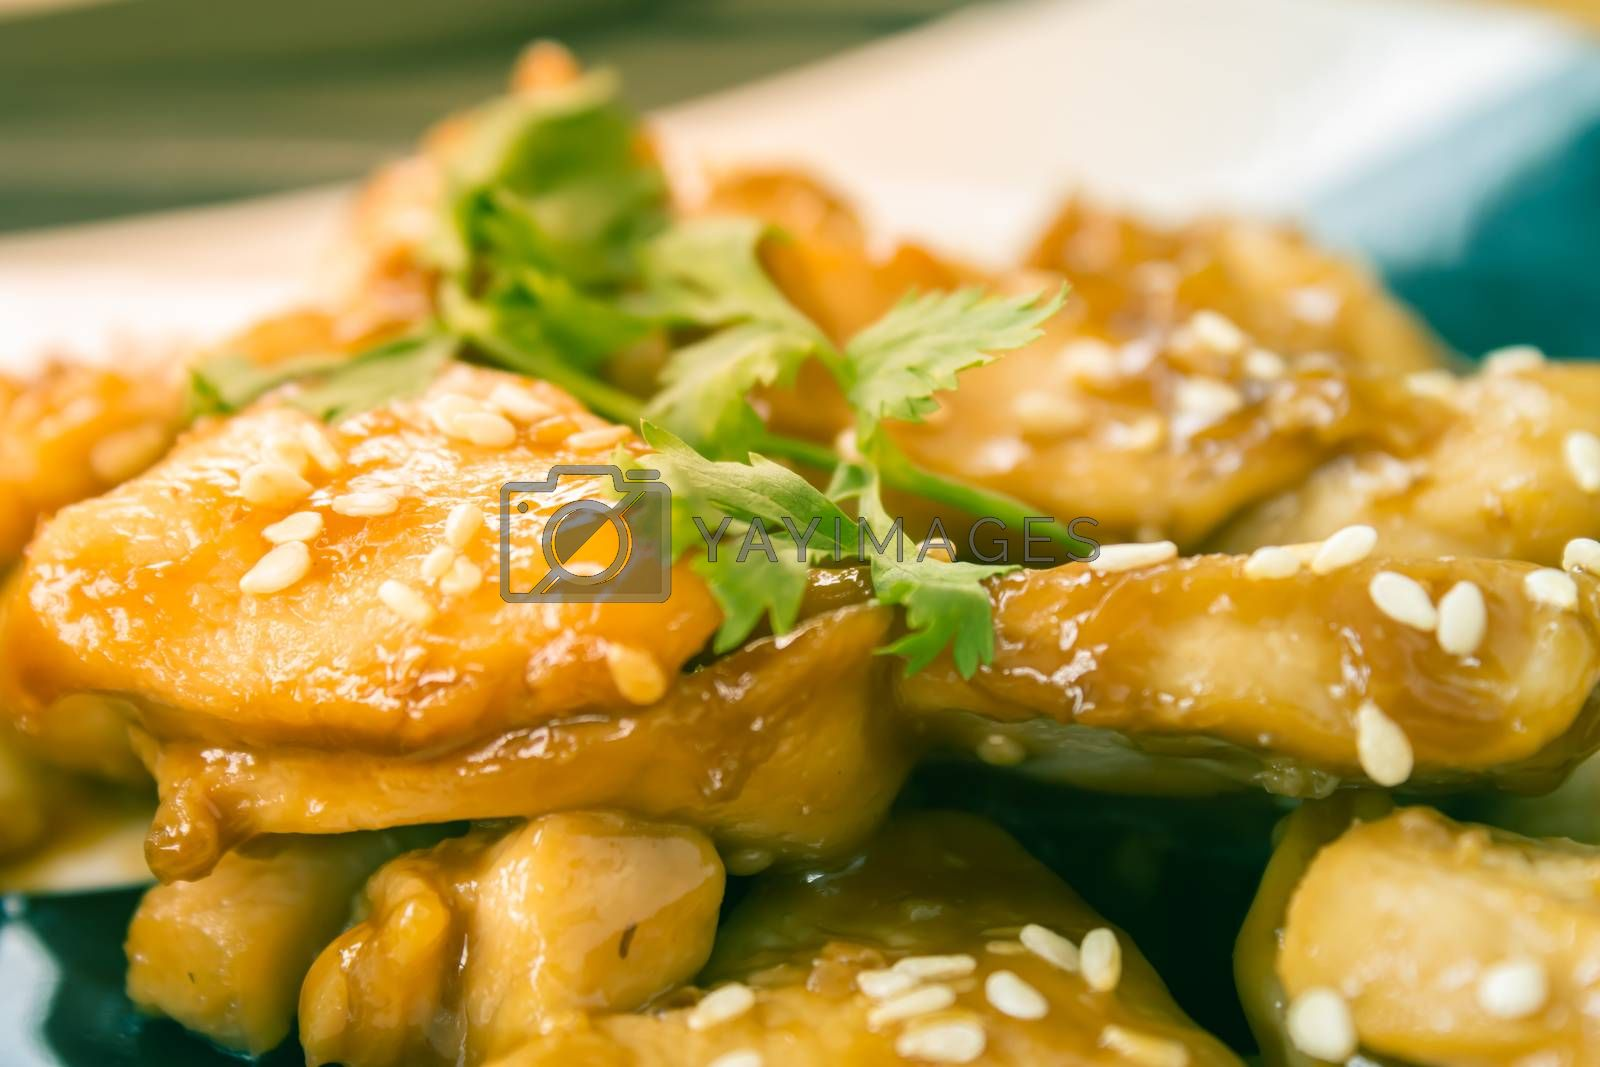 Fried Chicken with Garlic and Pepper and Coriander in Dish with Natural Light on Center Frame in Vintage Tone